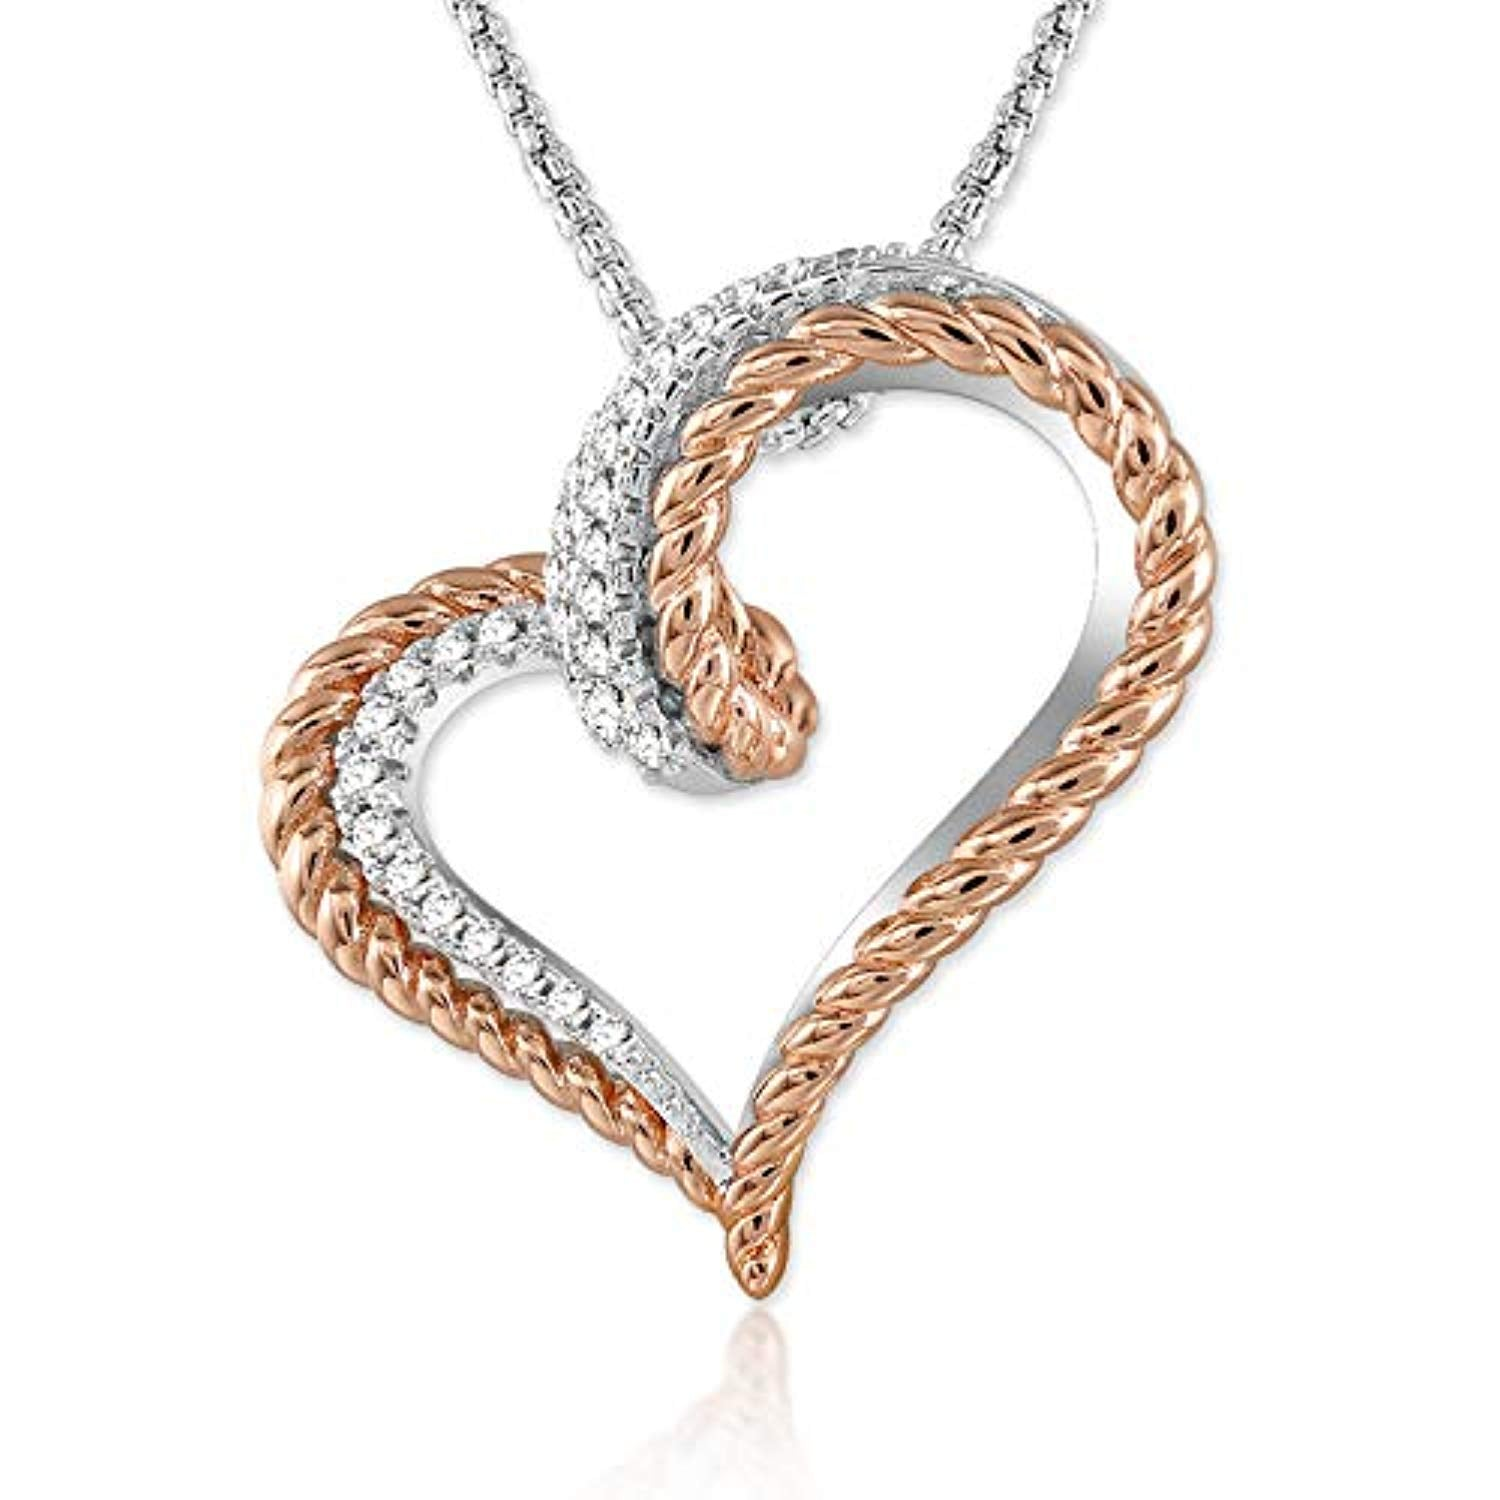 Women Love Heart Pendant Necklace Adjustable 18 Inches Rose Gold Heart Necklaces Jewelry Gifts for Wife Girlfriend